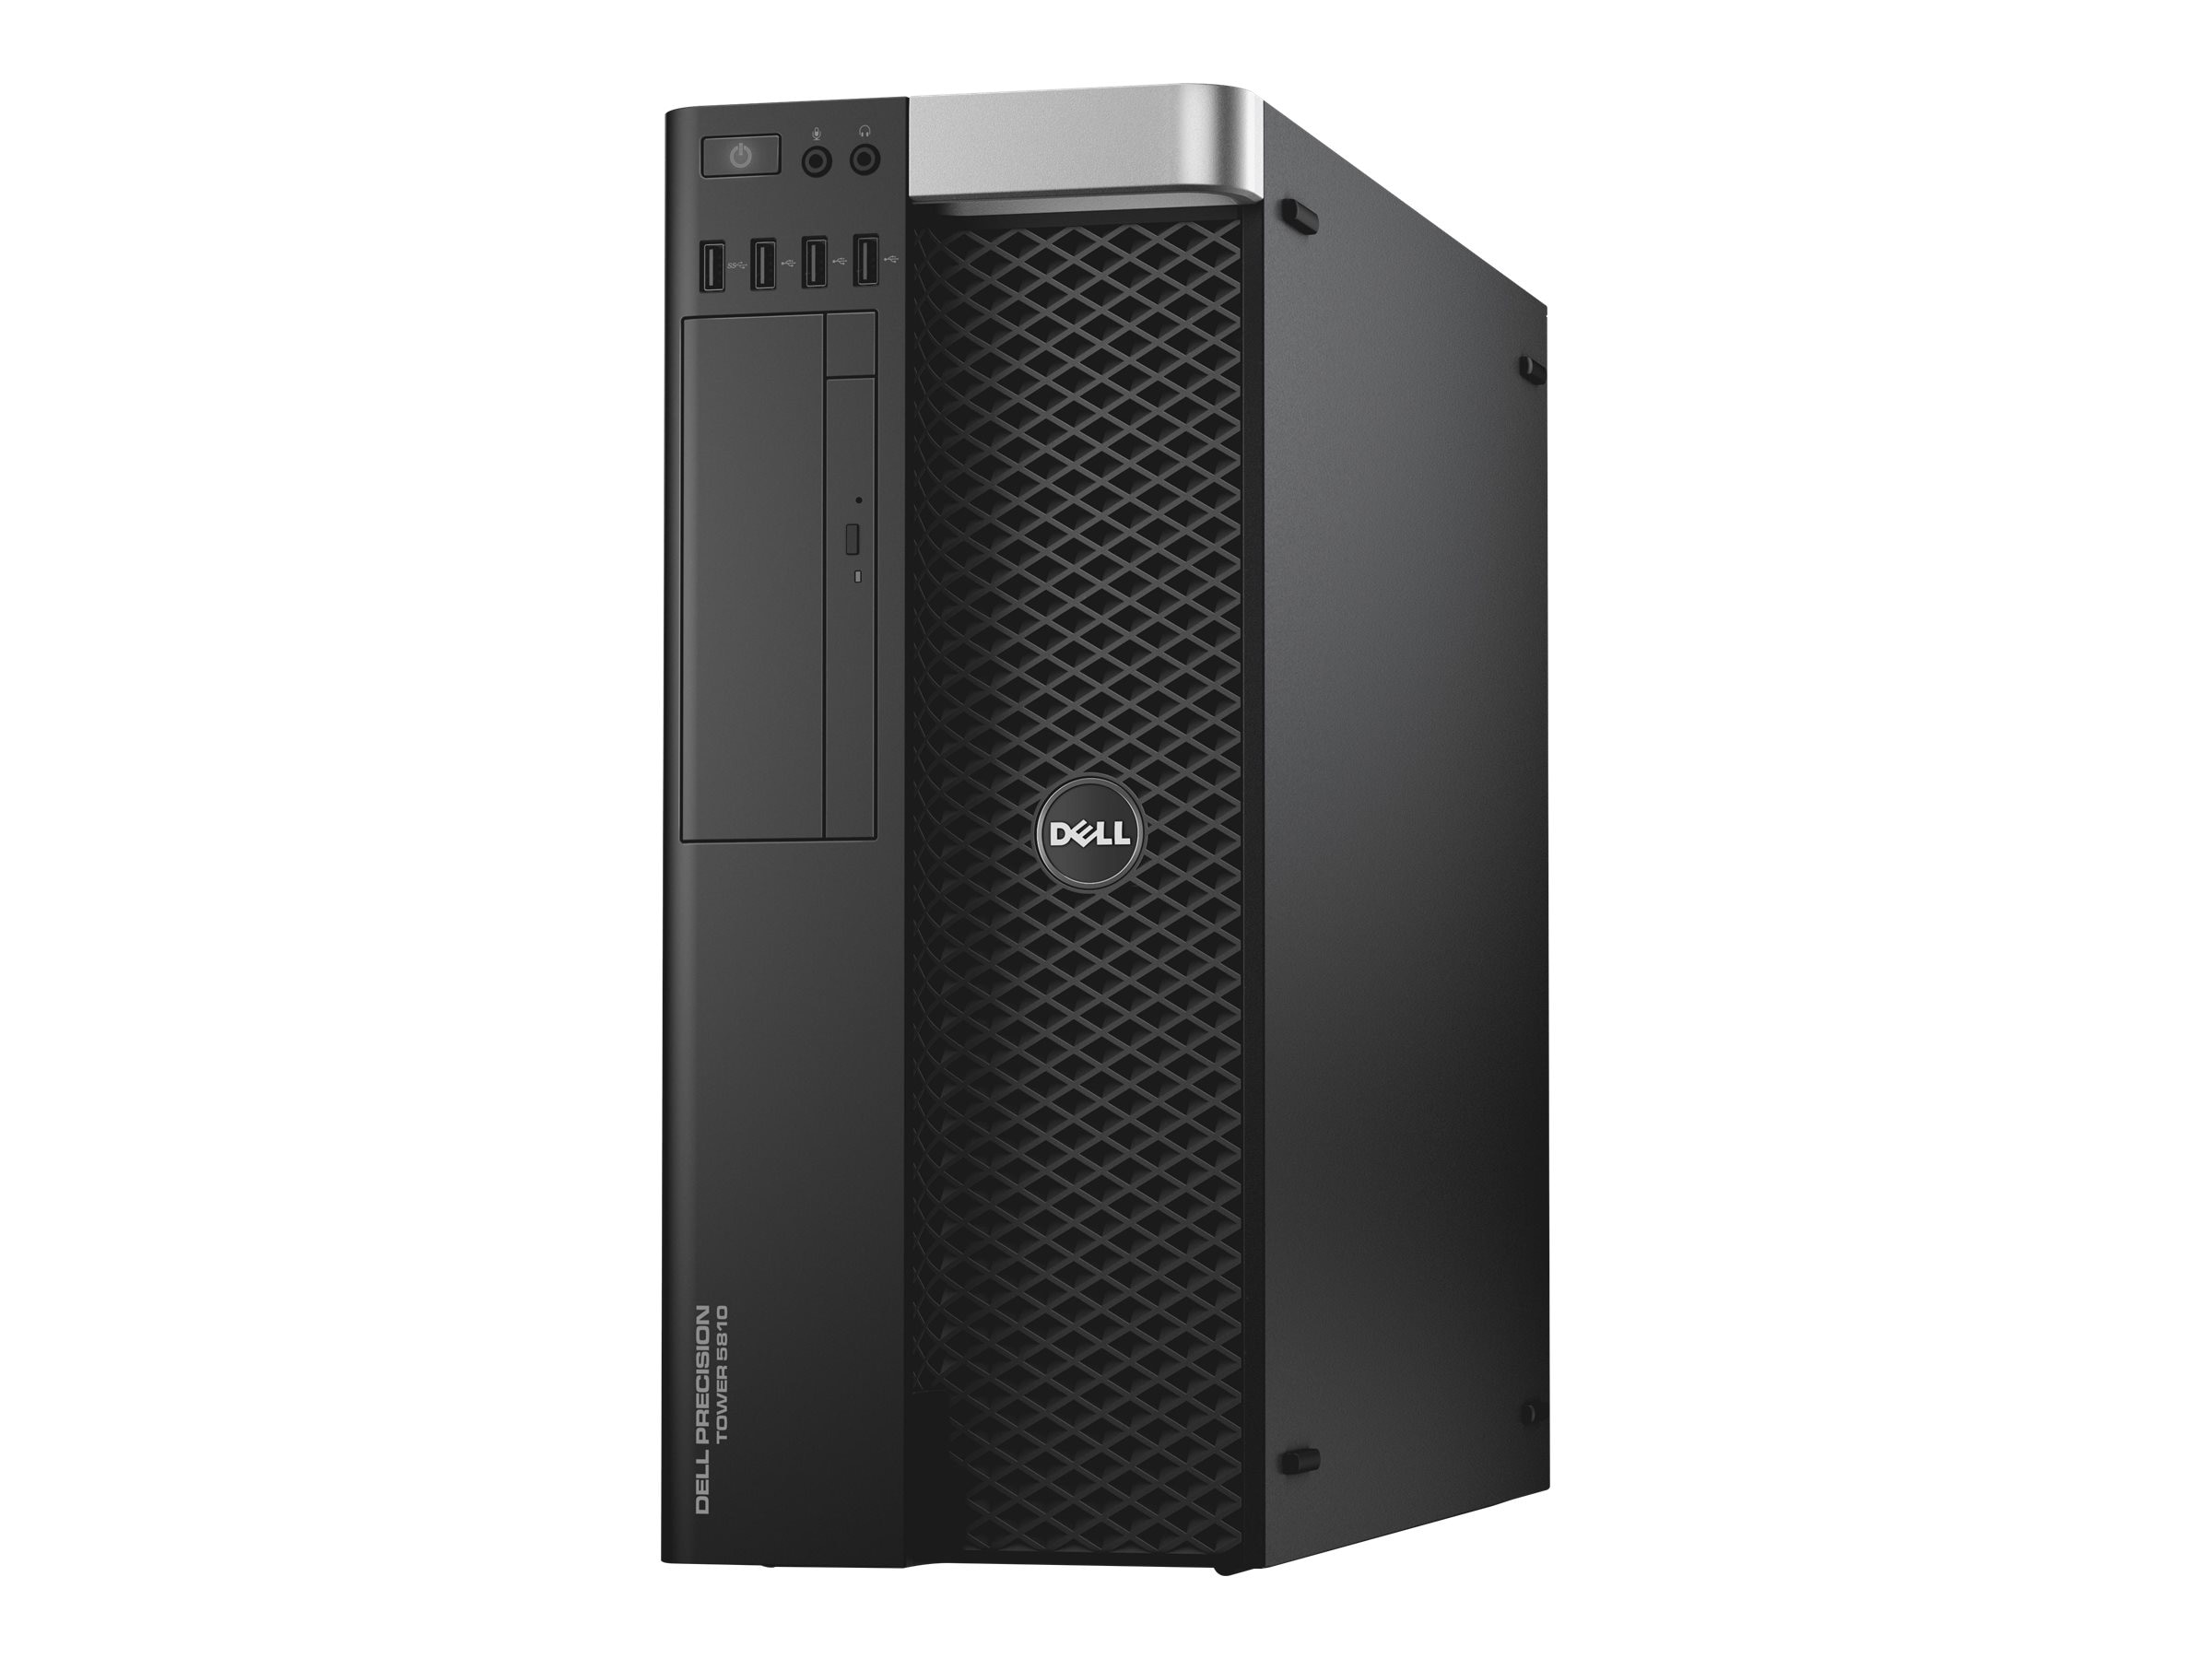 Dell Precision 5810 Tower Xeon QC E5-1620 v3 3.5GHz 8GB 1TB K620 DVD-ROM GbE W7P64-W10P